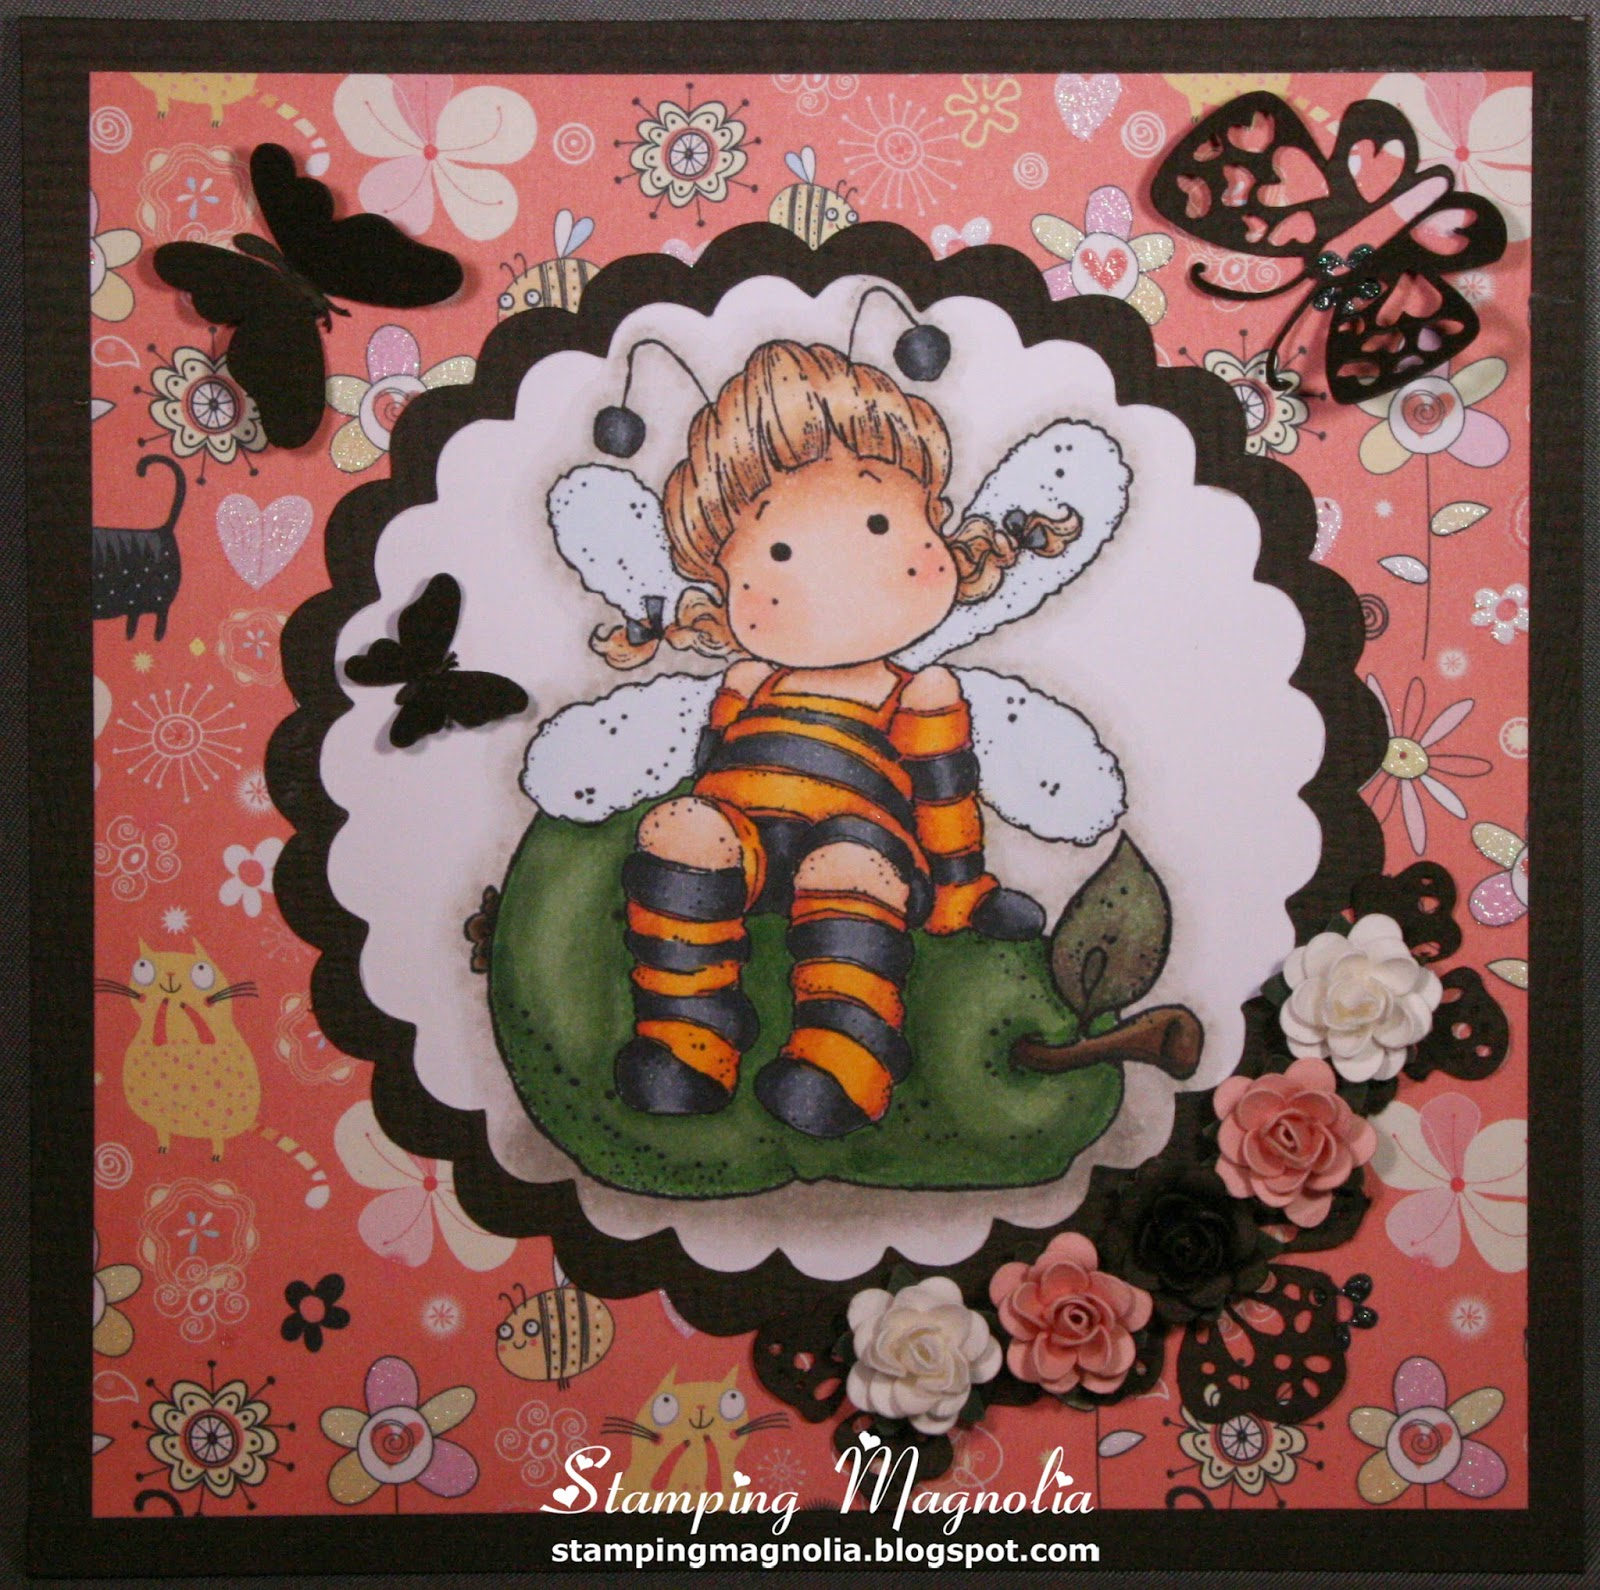 Coloring Magnolia Stamp Summer Memories Collection - Honey Bee Tilda